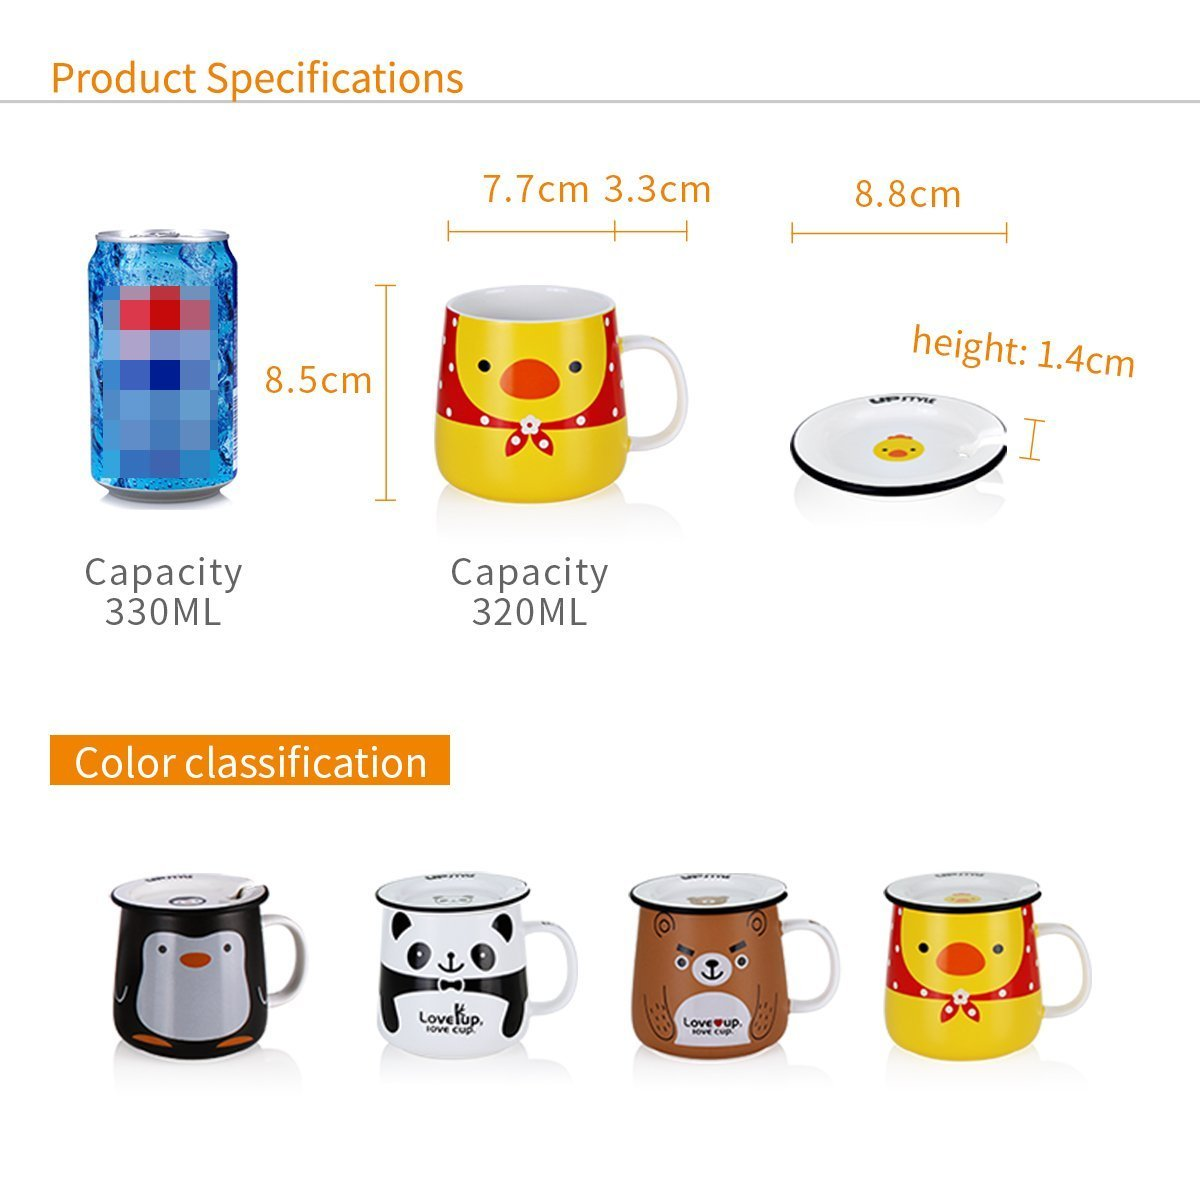 UPSTYLE Cute Animal Penguin Tea Mug Funny Lovely Tea and Coffee Mug Morning Coffee Milk Ceramic Water Cup with Lid and Handle for Office home - Best Gift for friends and family,10.8OZ(320ml)(Bear) by UPSTYLE (Image #2)